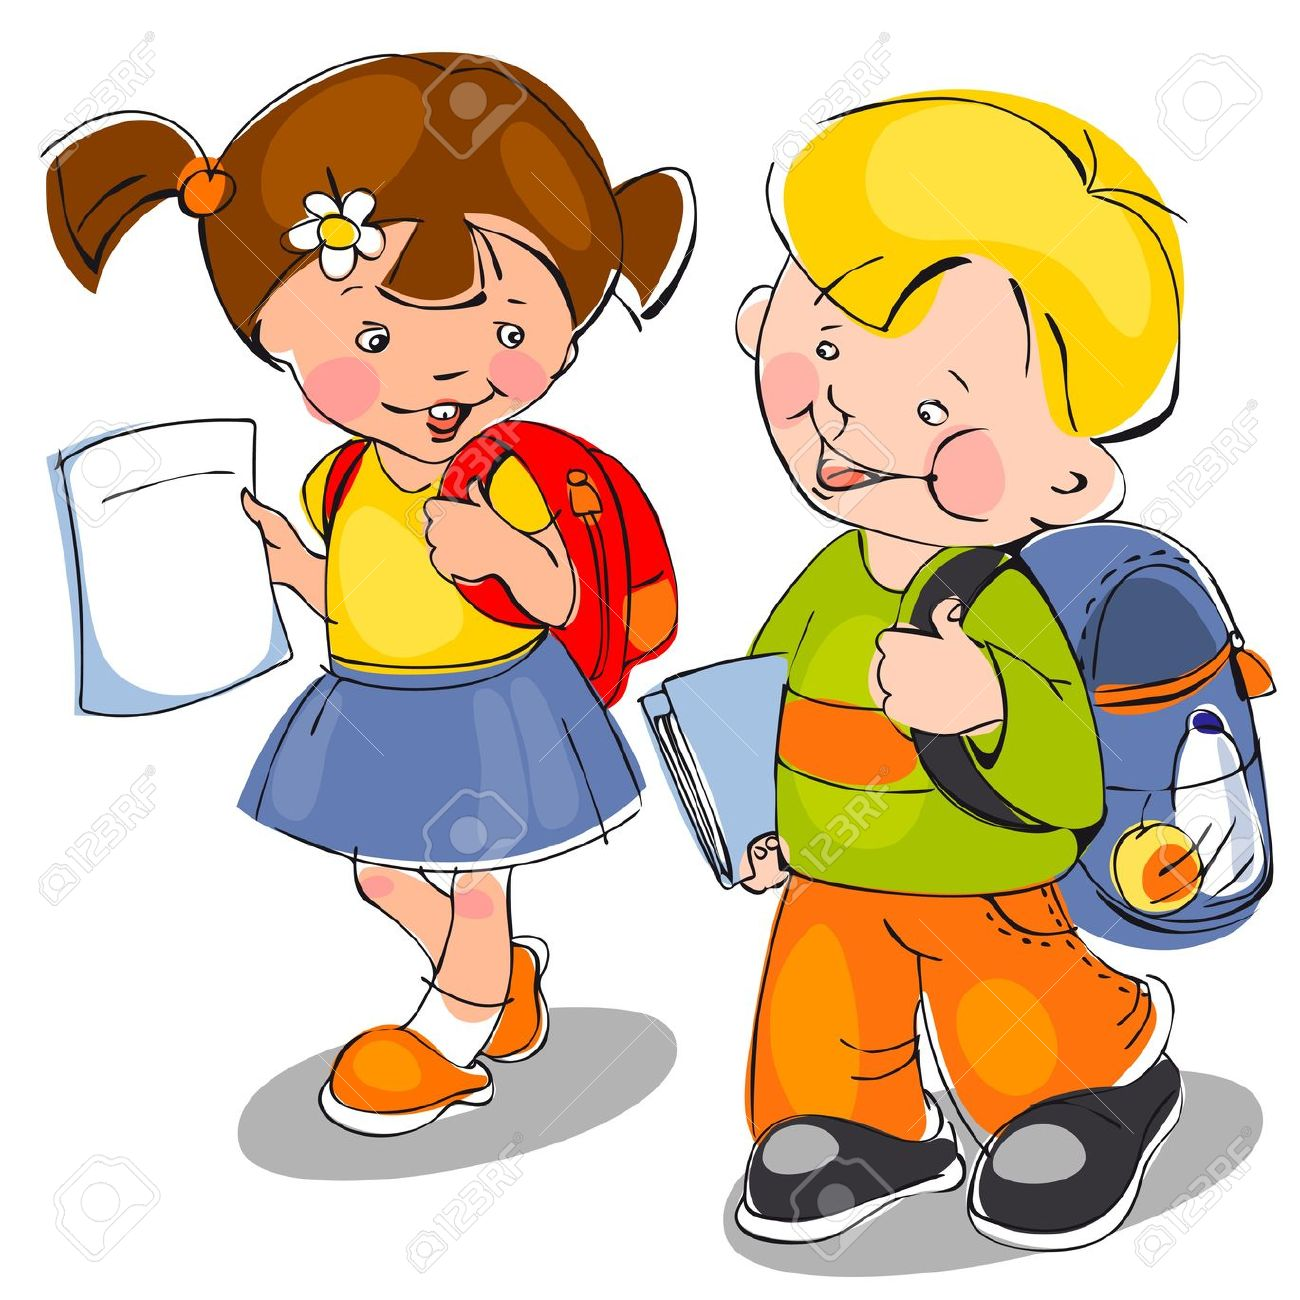 Kids with backpacks clipart image free stock Happy Children Come With Backpacks And Notebooks To School. Banner ... image free stock